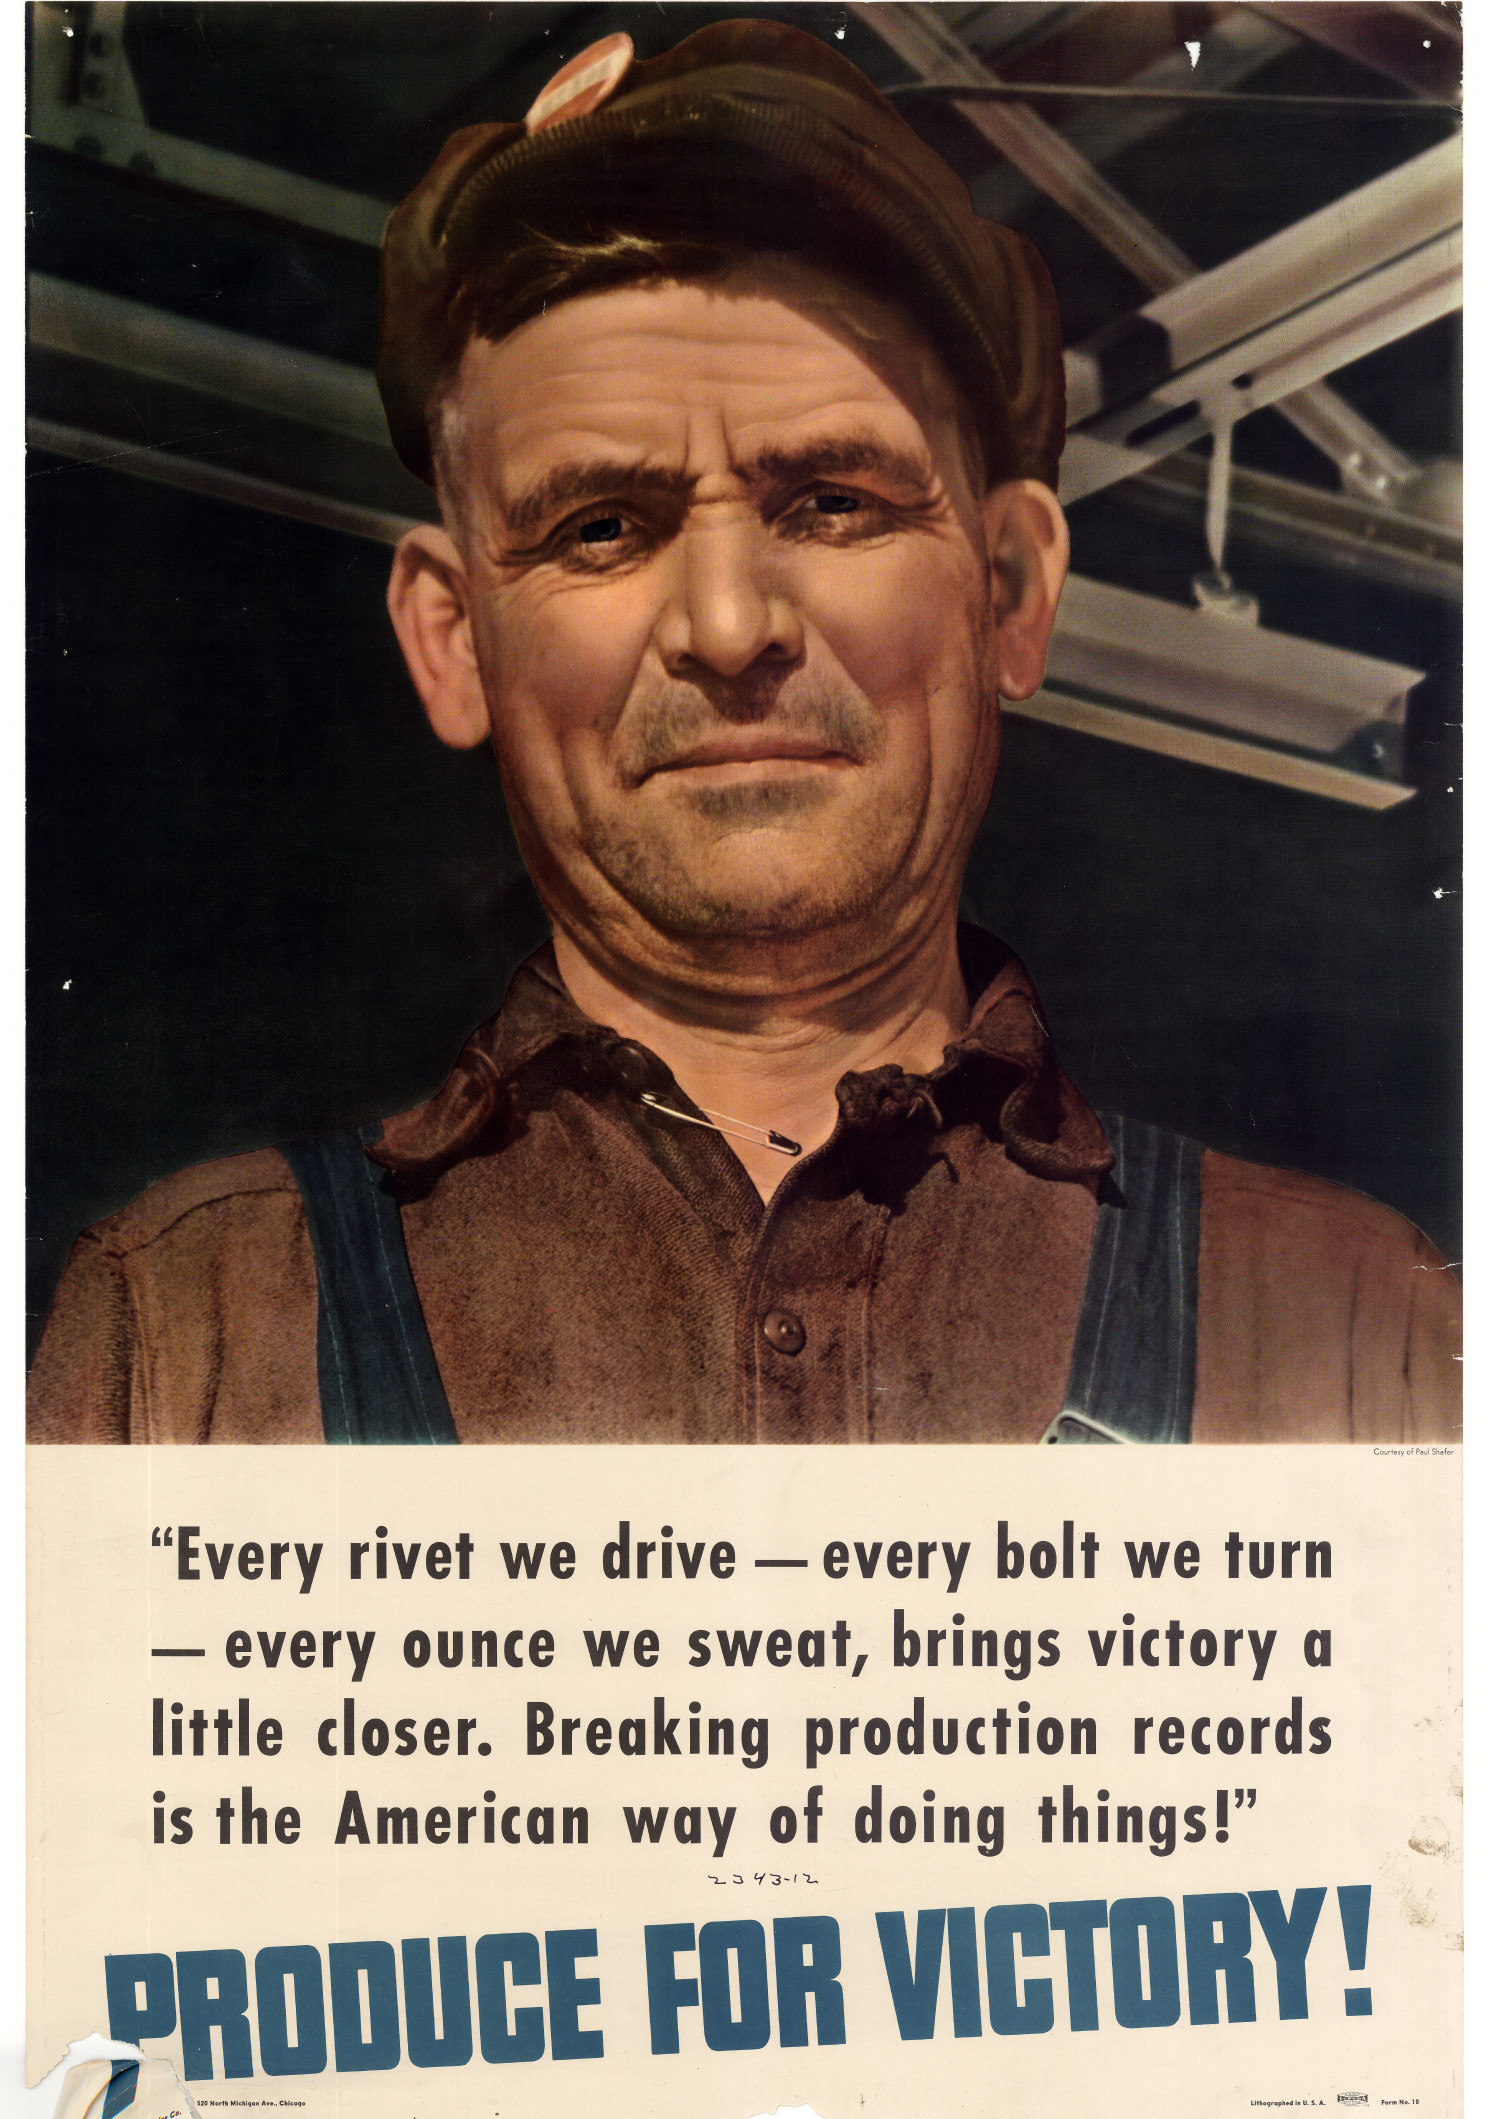 """Every rivet we drive -- every bolt we turn -- every ounce we sweat, brings victory a little closer. Breaking production records is the American way of doing things!"" : produce for victory!                                                                                                      [Sequence #]: 1 of 1"